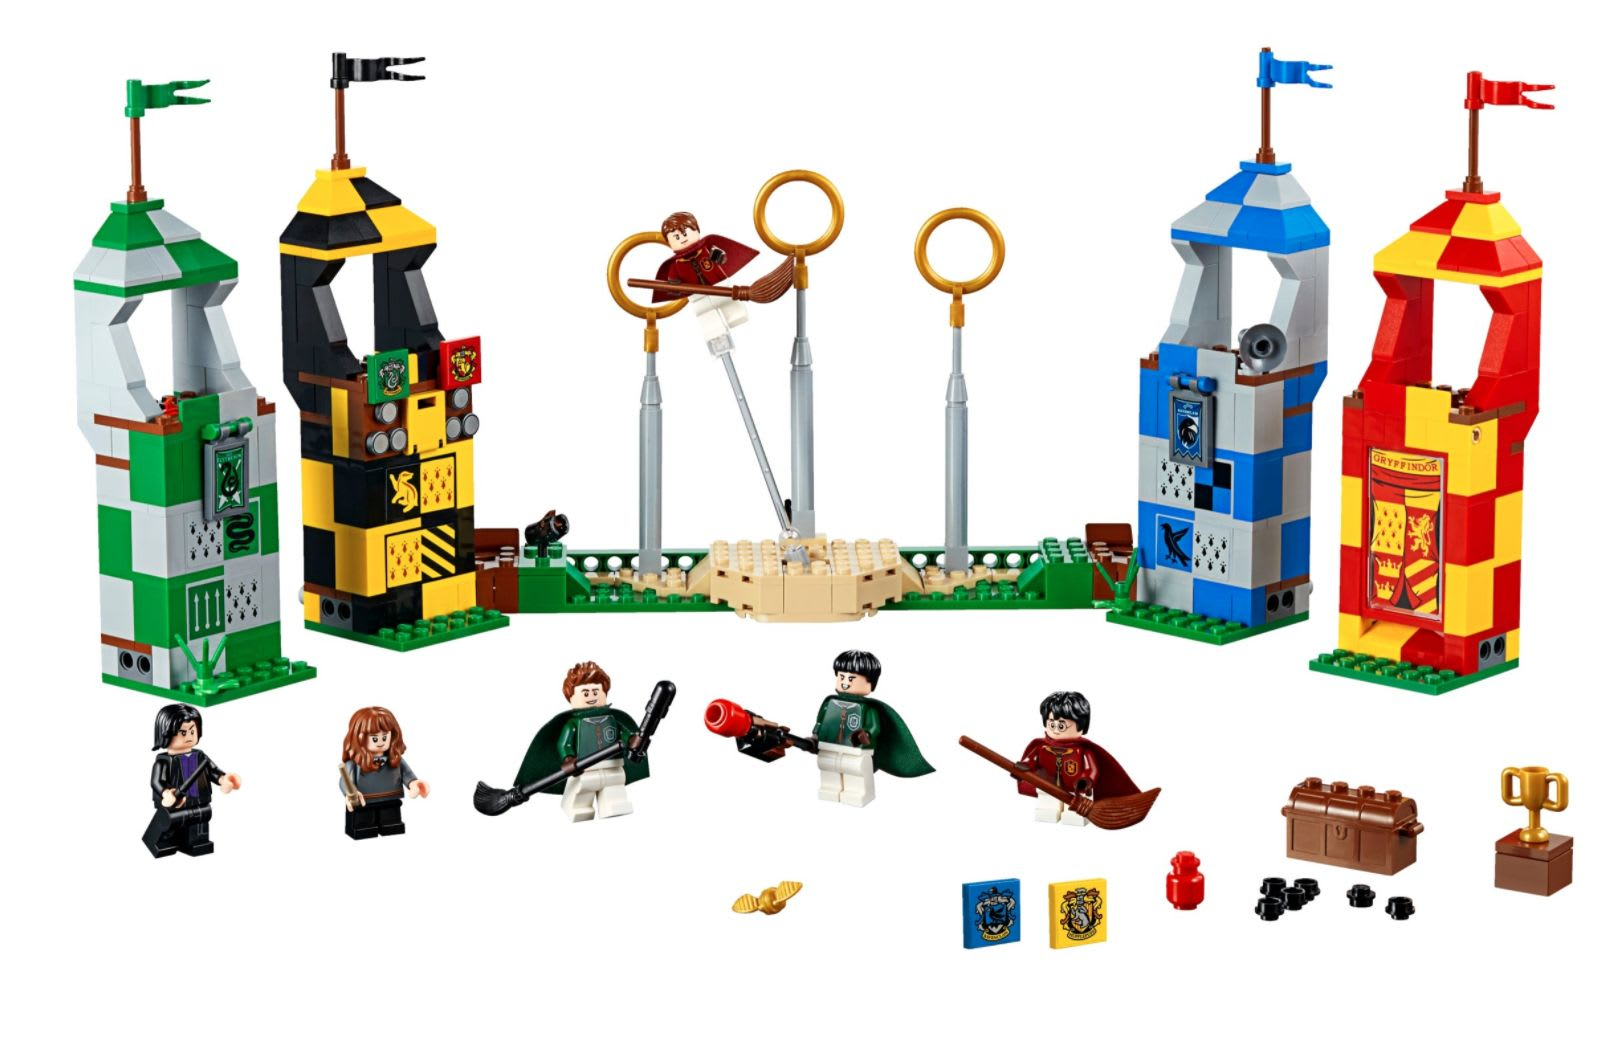 Discover the LEGO Harry Potter Quidditch Match set at LEGO.